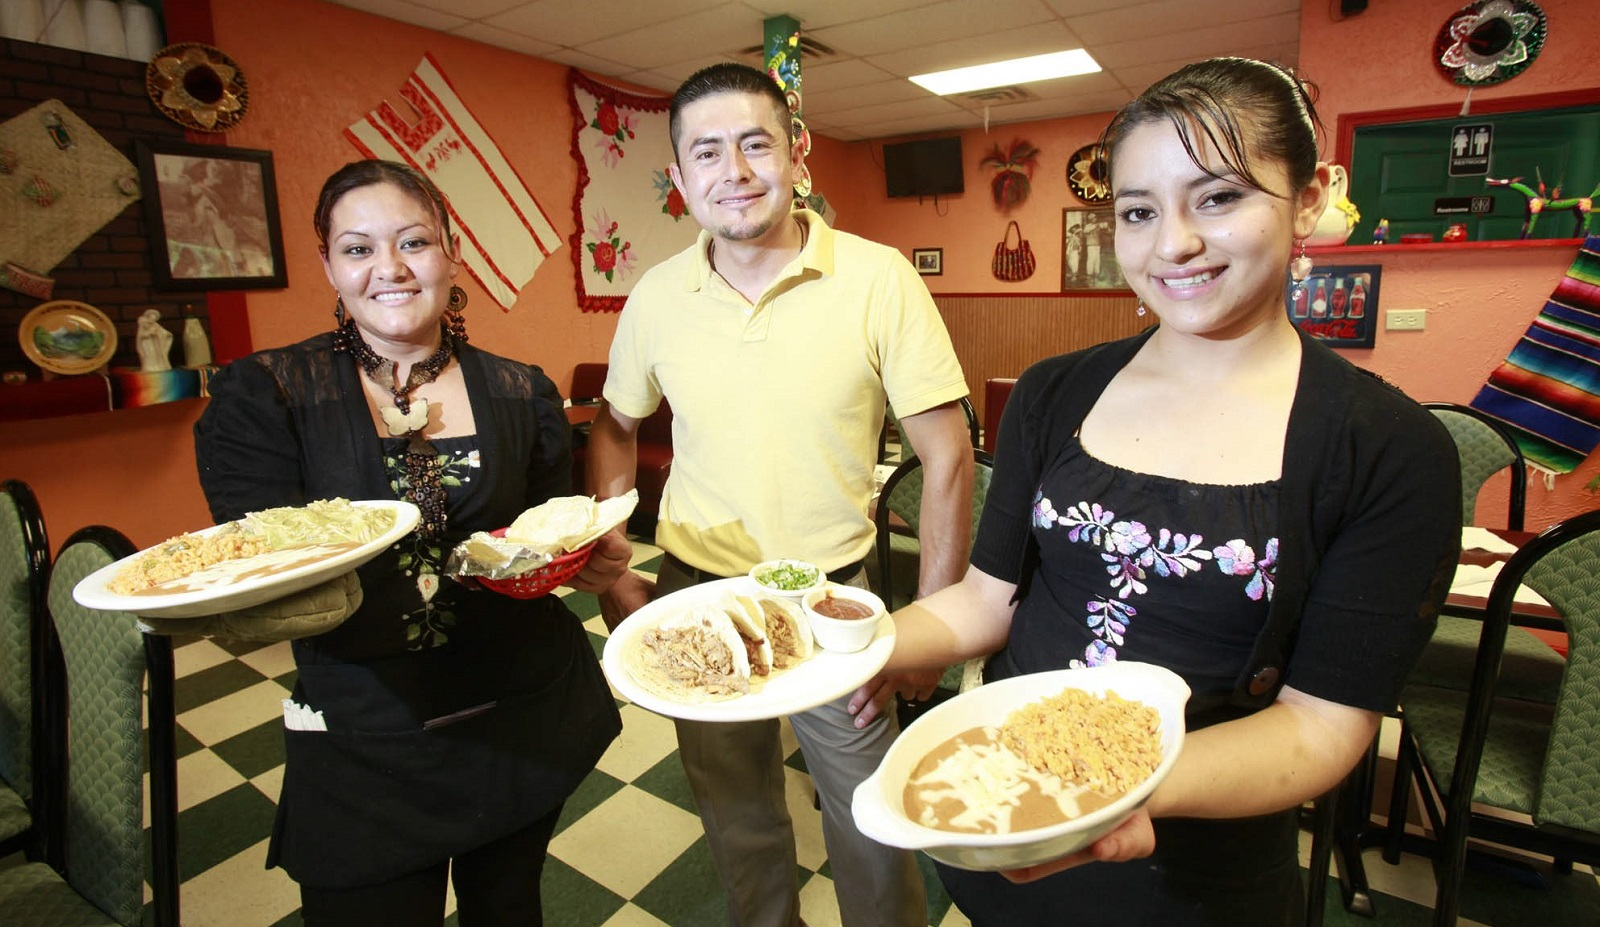 From left to right: Waitress Nelly Gallicia, co-owner Leonel Rosario, and waitress Elva Rosario as they hold plates of chili verde, and taco carnitas, at Mariachi de Oro. (Harry Scull Jr./Buffalo News)